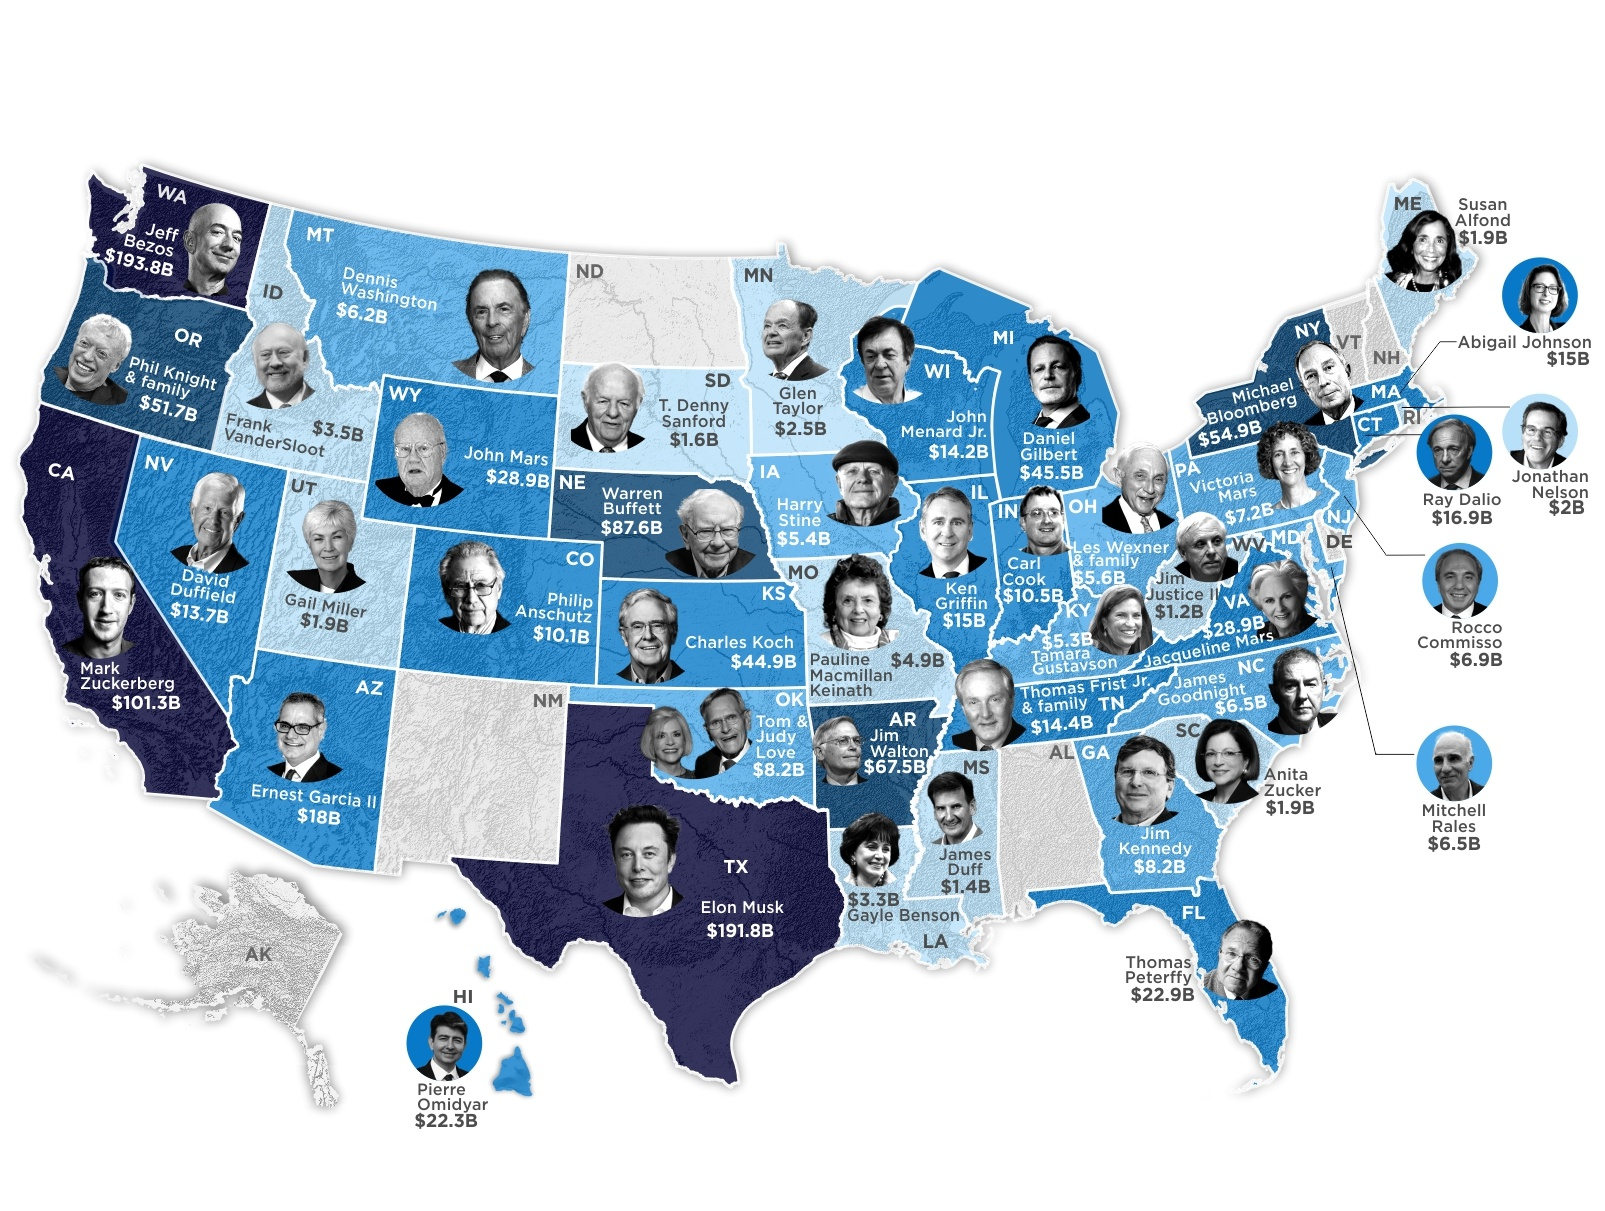 Mapped: The Wealthiest Billionaires Around the U.S.